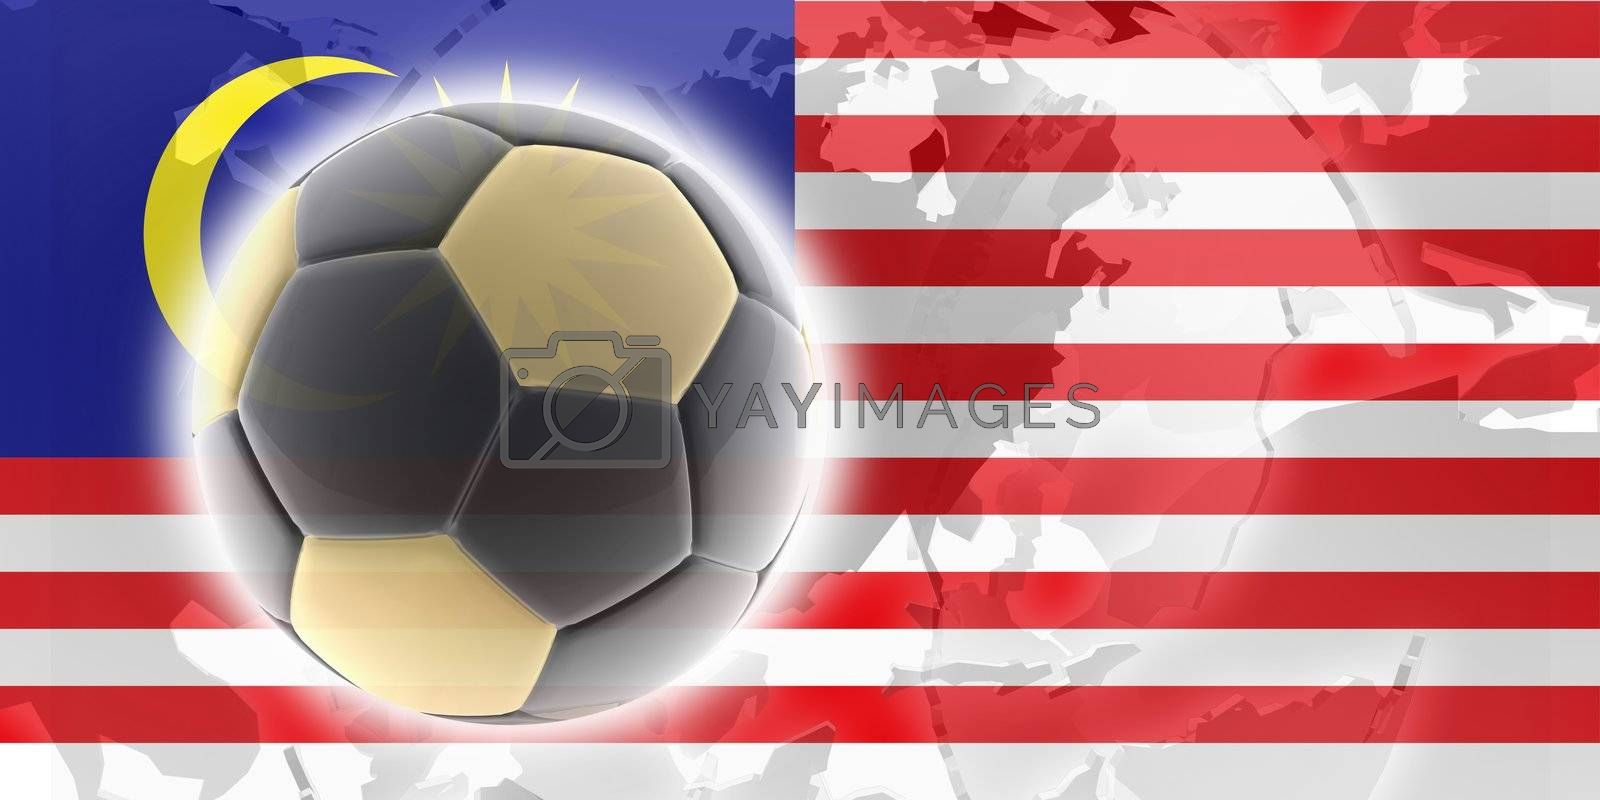 Flag of Malaysia, national country symbol illustration sports soccer football